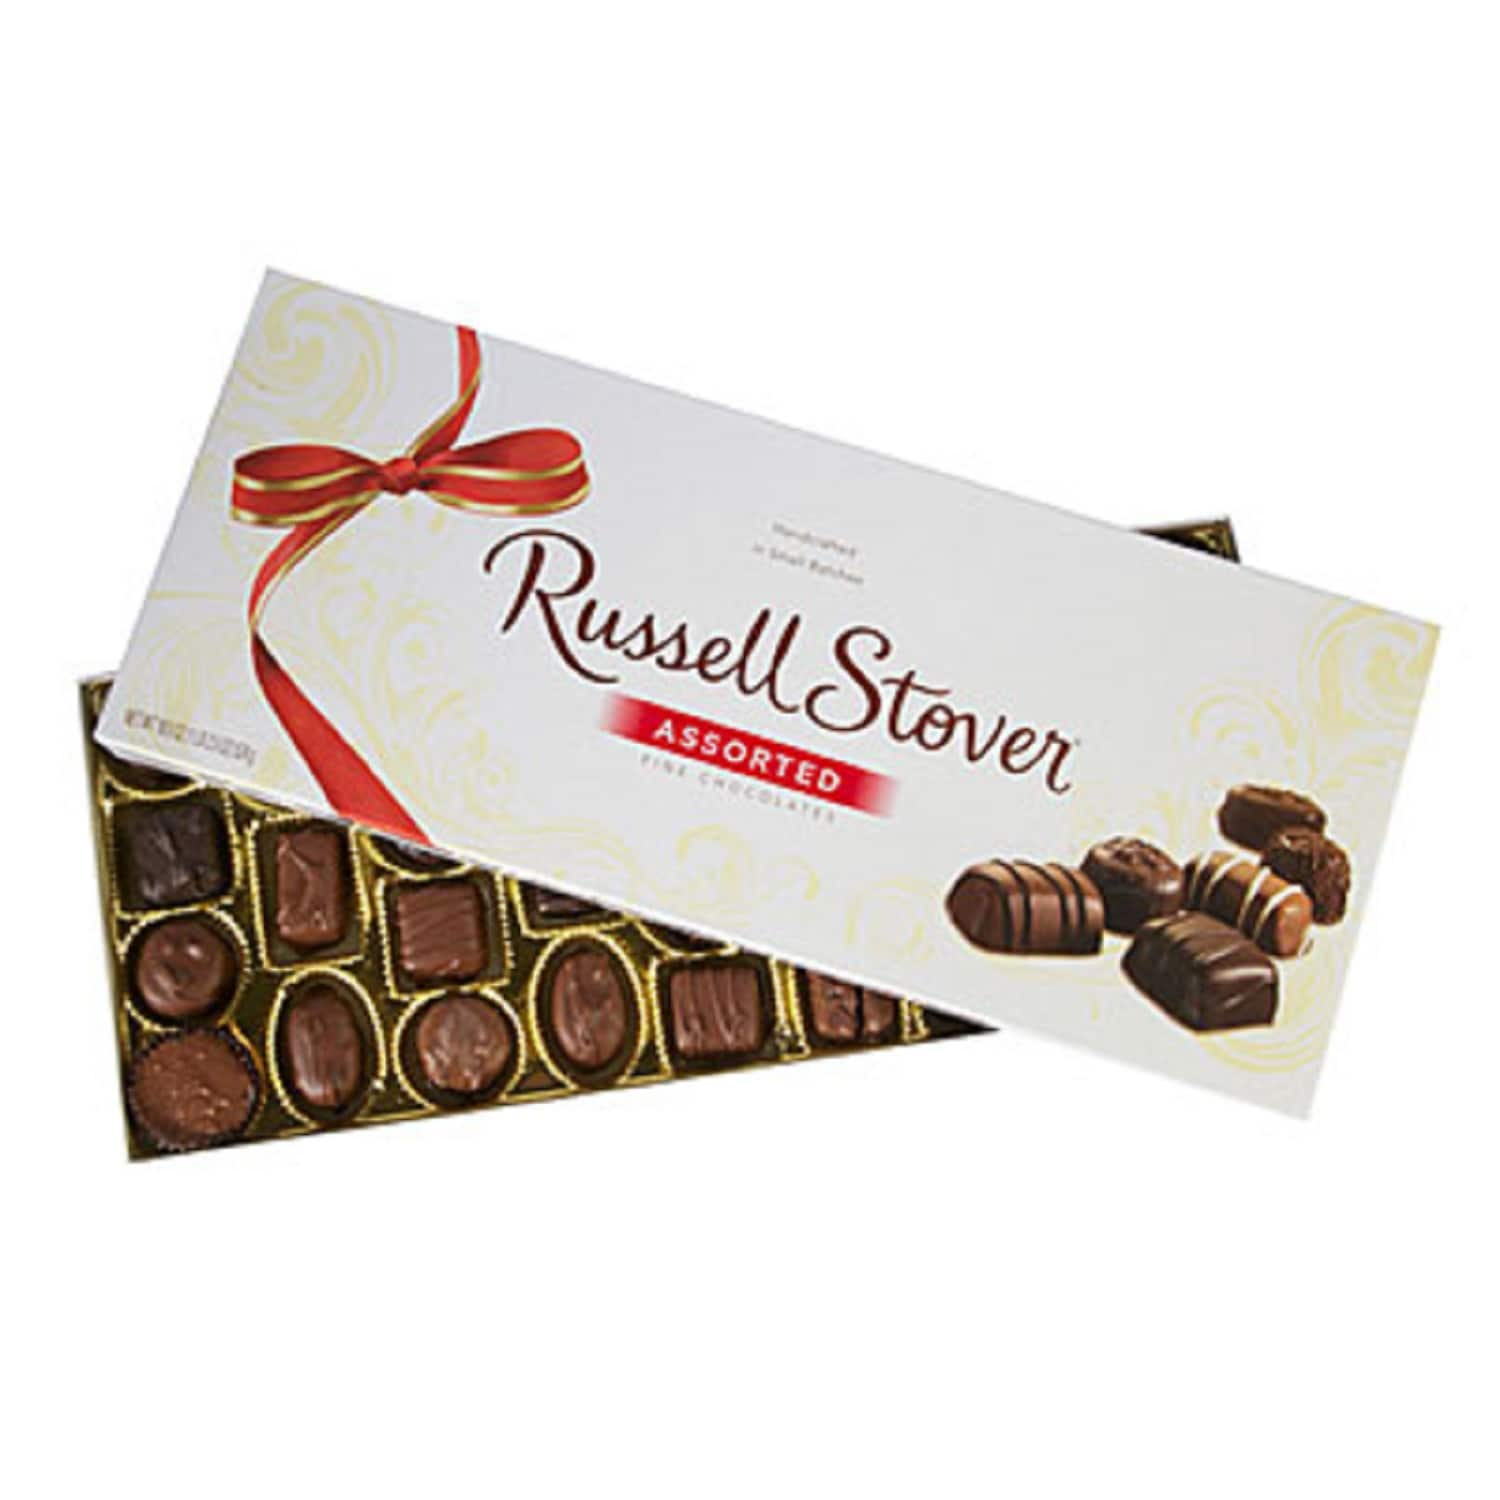 Russell Stover Chocolate Box